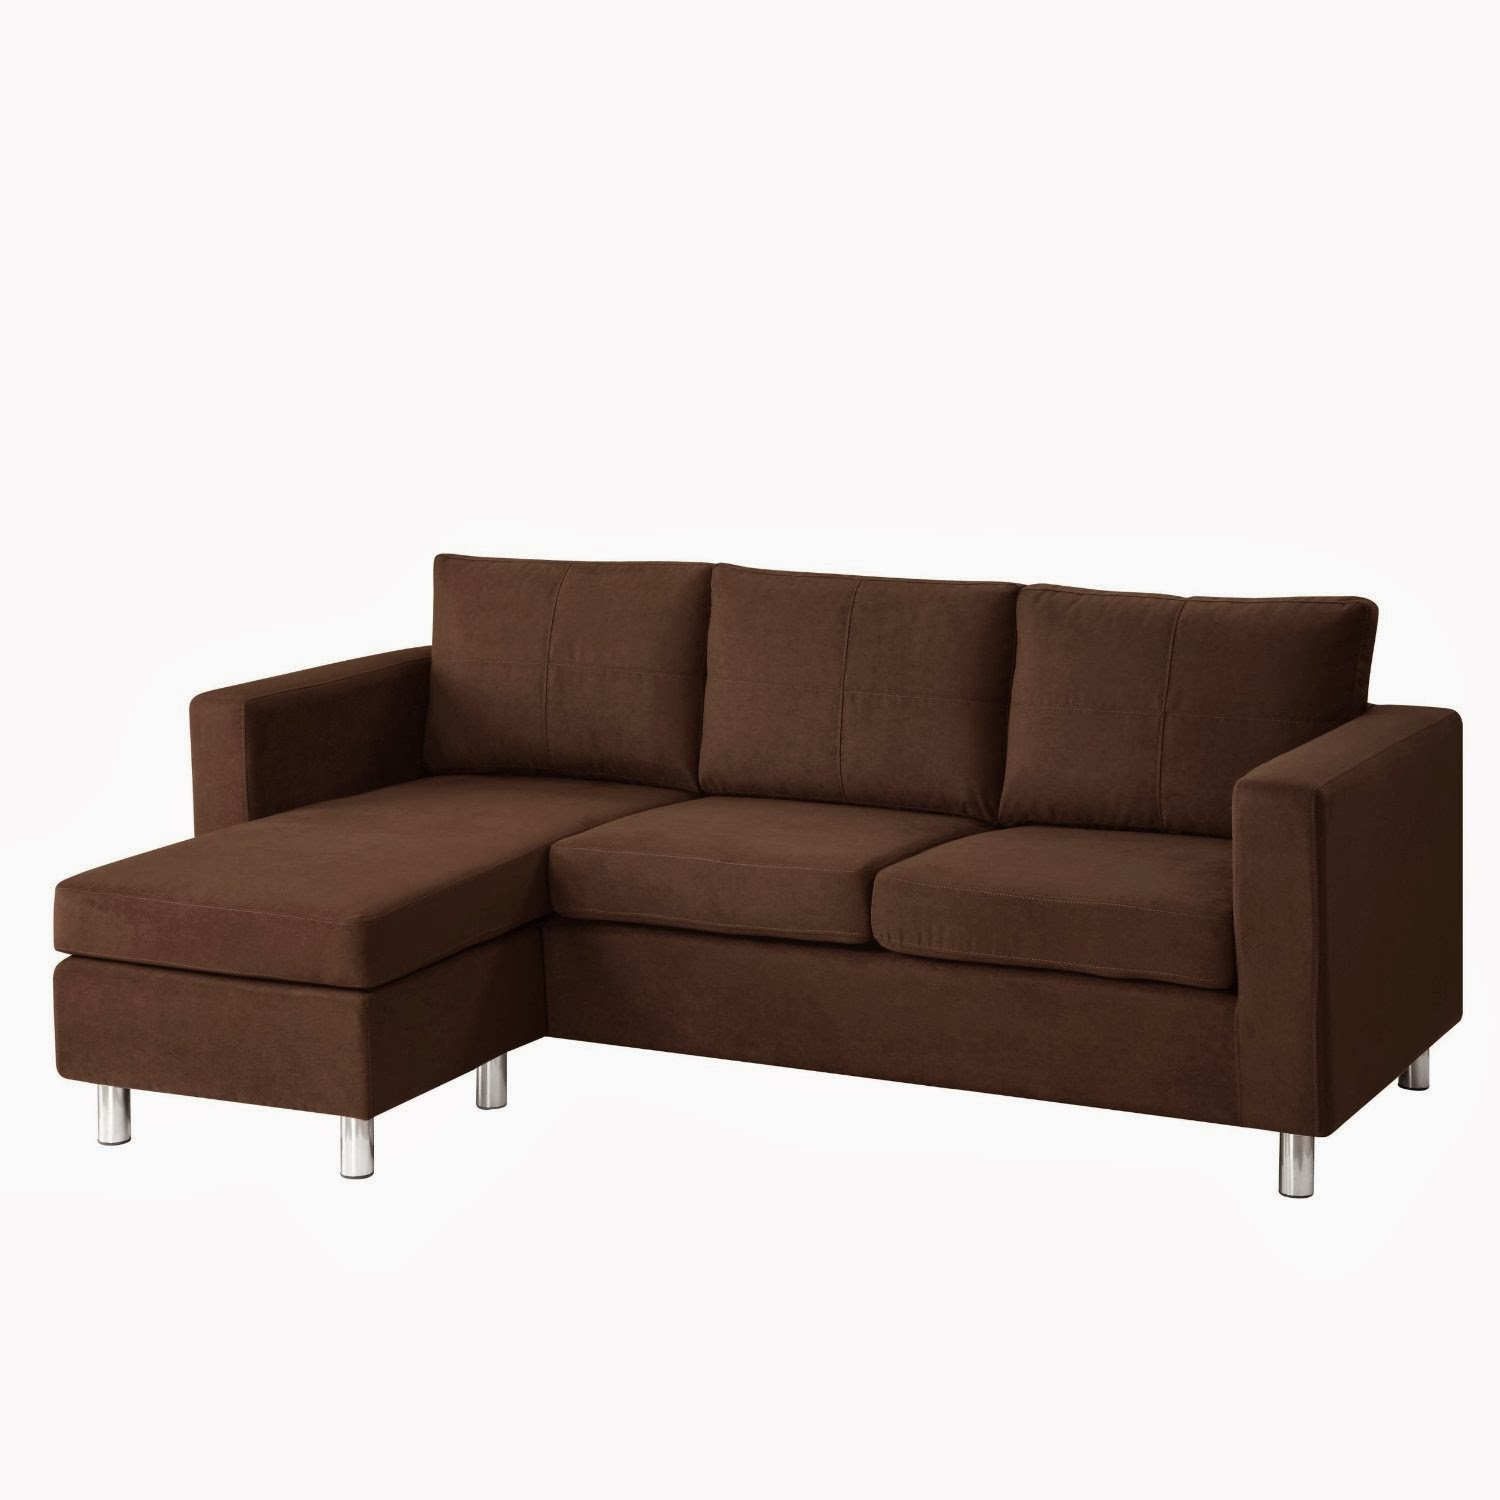 Small sectional sofas reviews small sectional sofa with chaise Loveseat chaise sectional